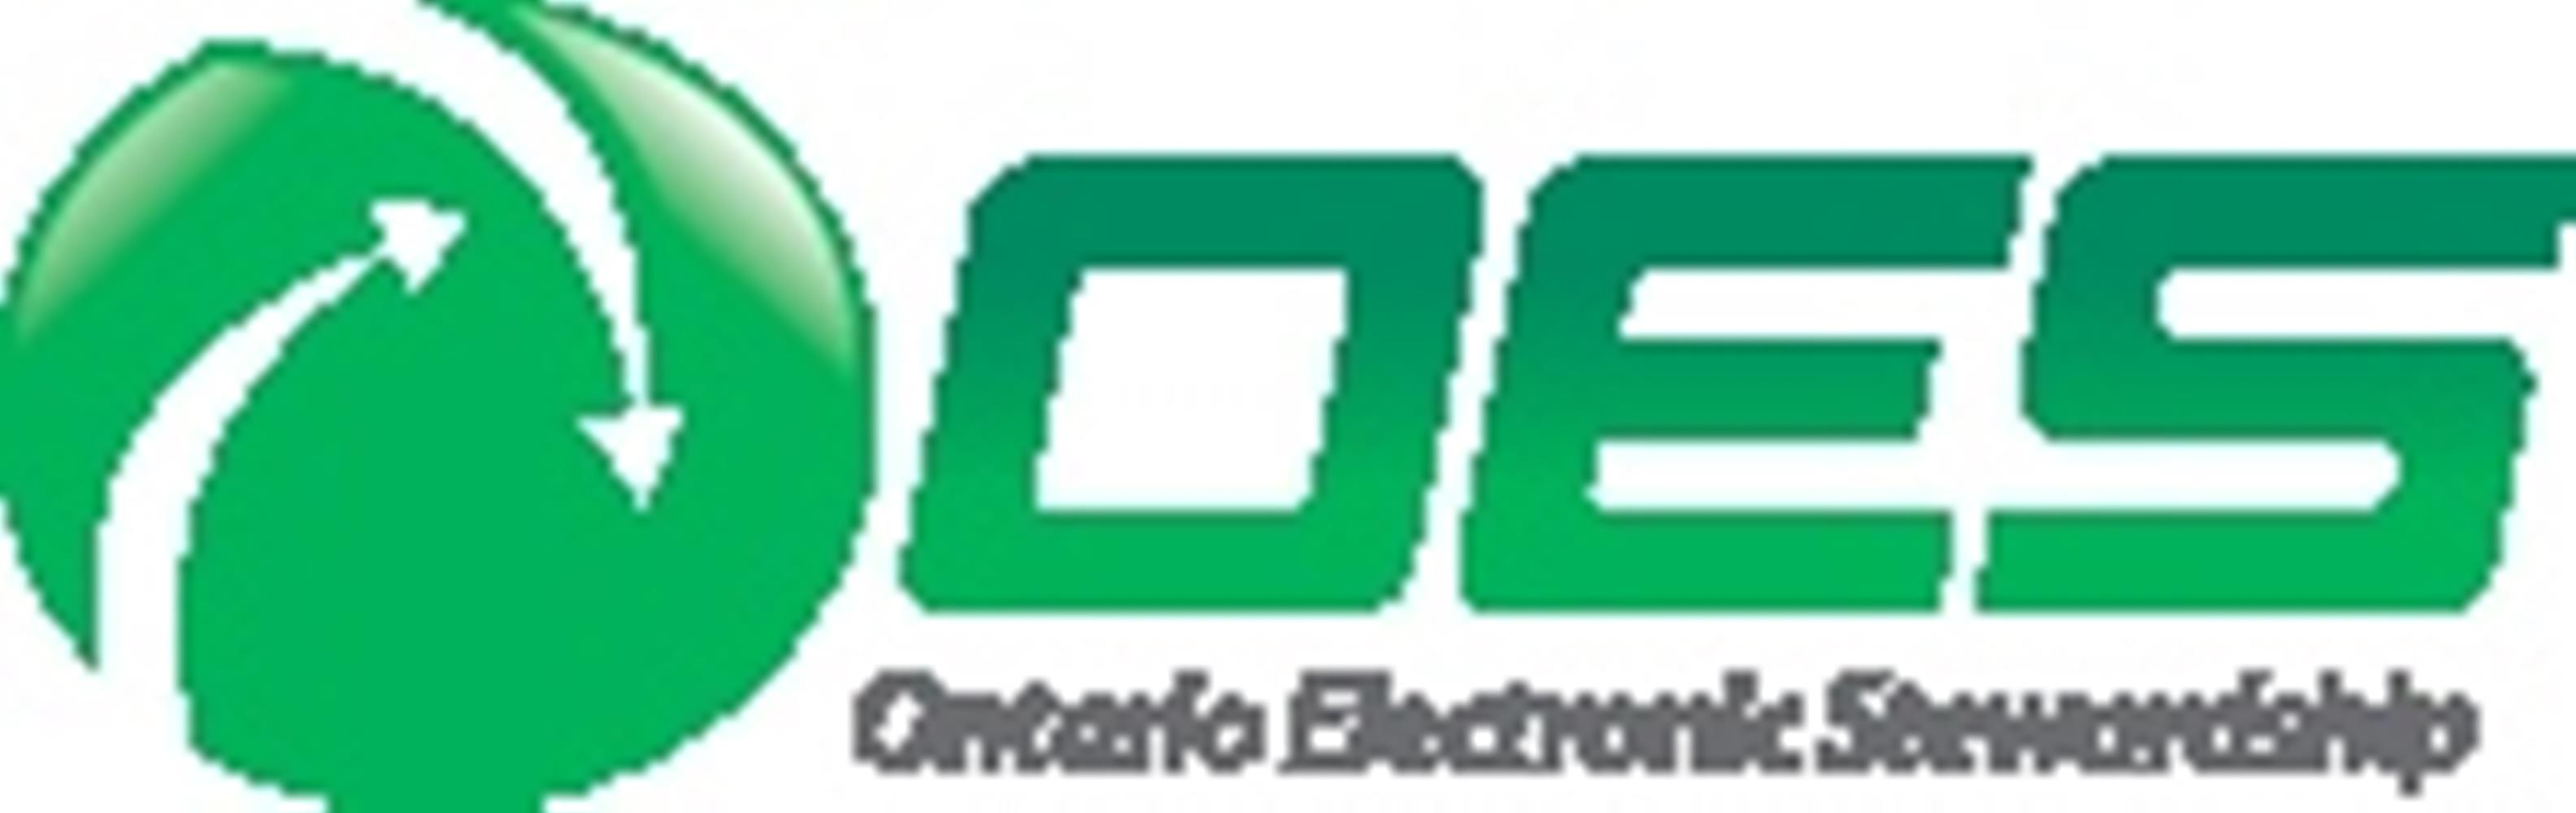 OES WASTE ELECTRONICS FEE (EEE) PRINTER